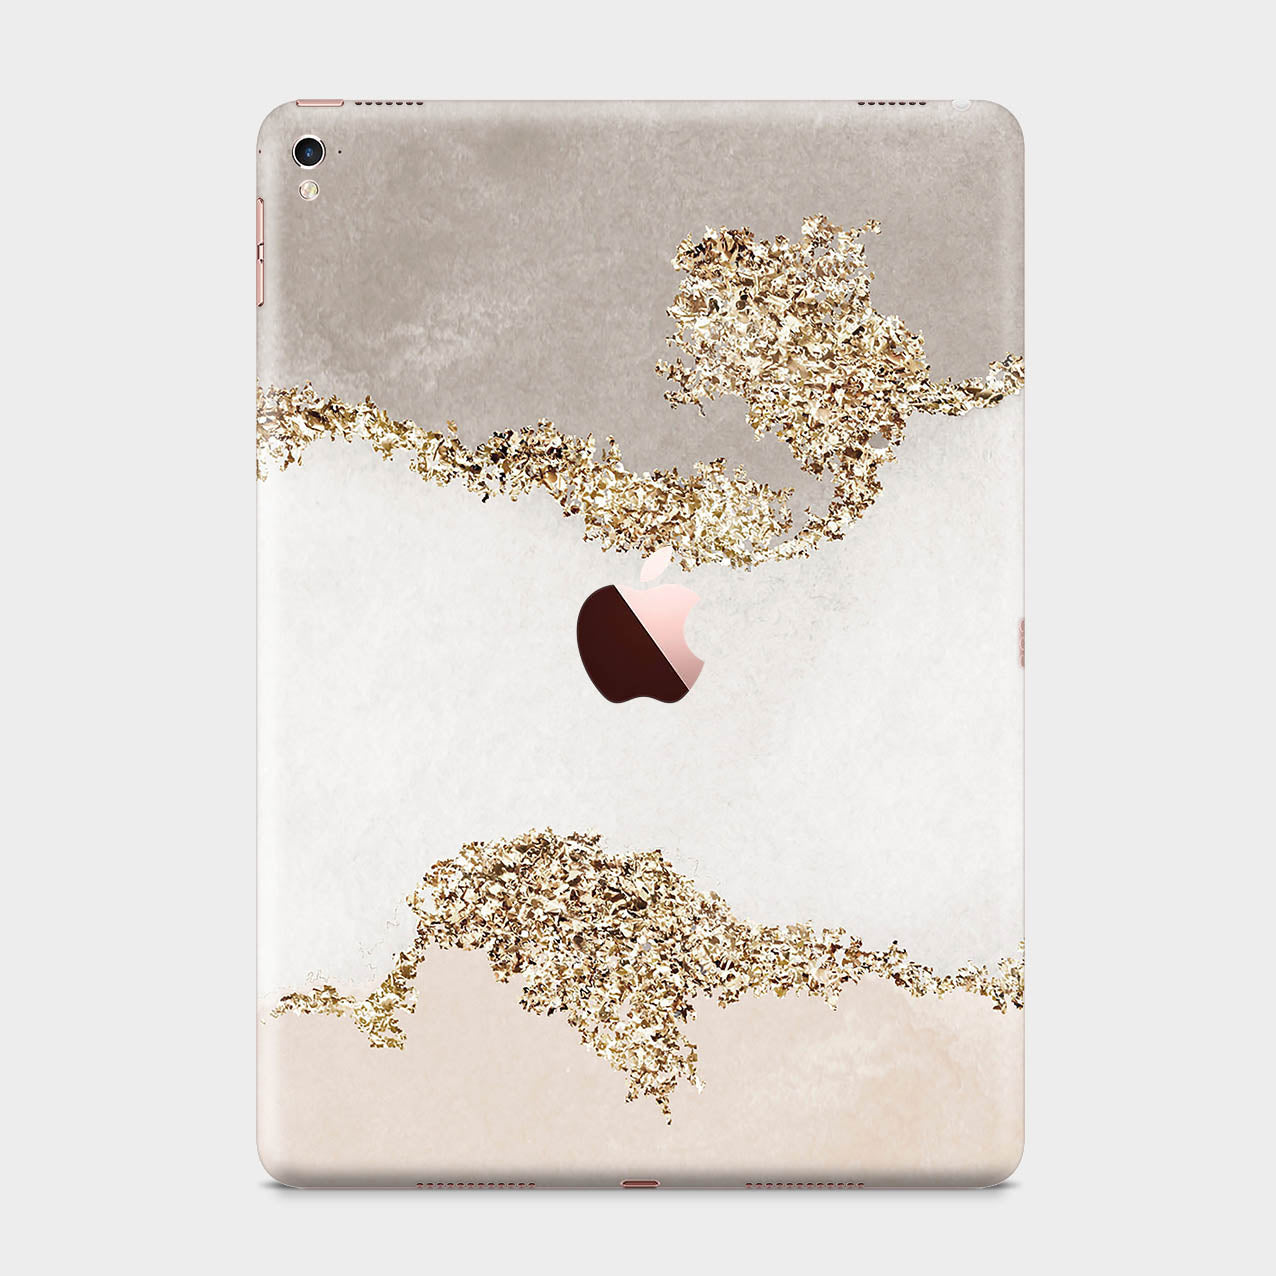 GOLDEN COAST iPad Air skins | Pigtou